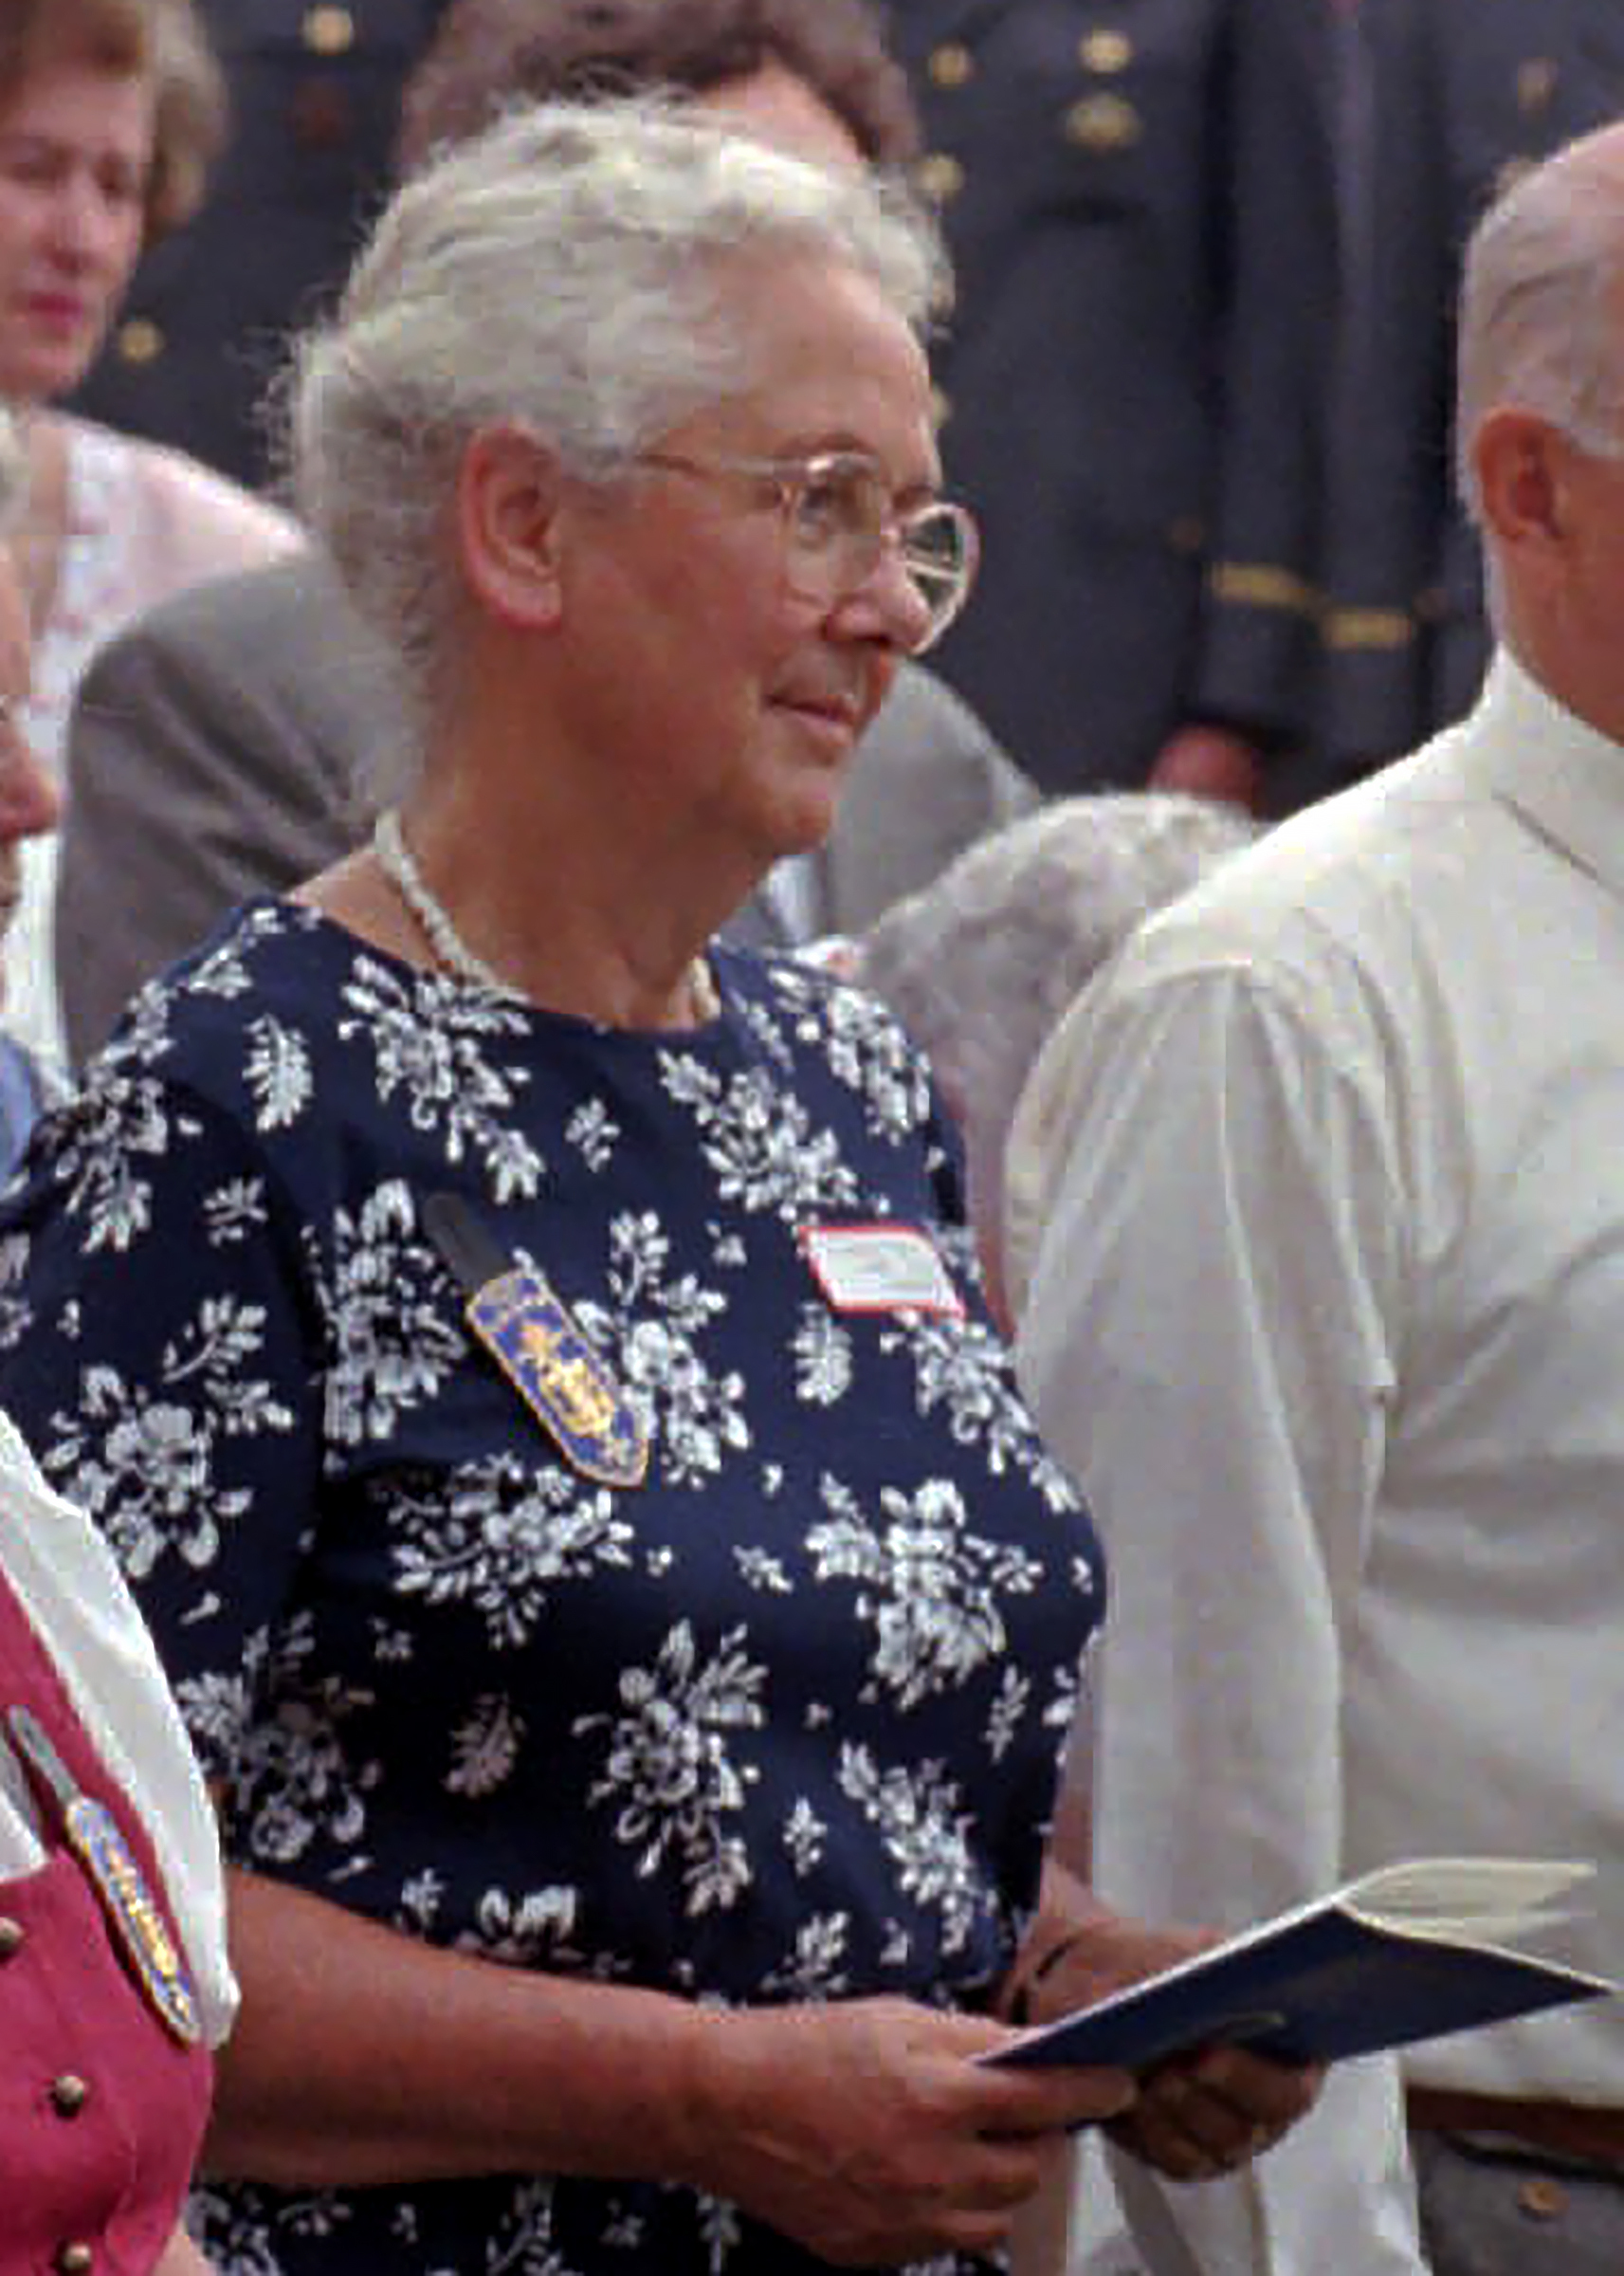 In this July 13, 1997 file photo, Lorli von Trapp Campbell attends a mass honoring her father, in Stowe, Vermont. A funeral home confirmed Lorli von Trapp Campbell died Sunday, Oct. 17, 2021, in Northfield, Vermont.